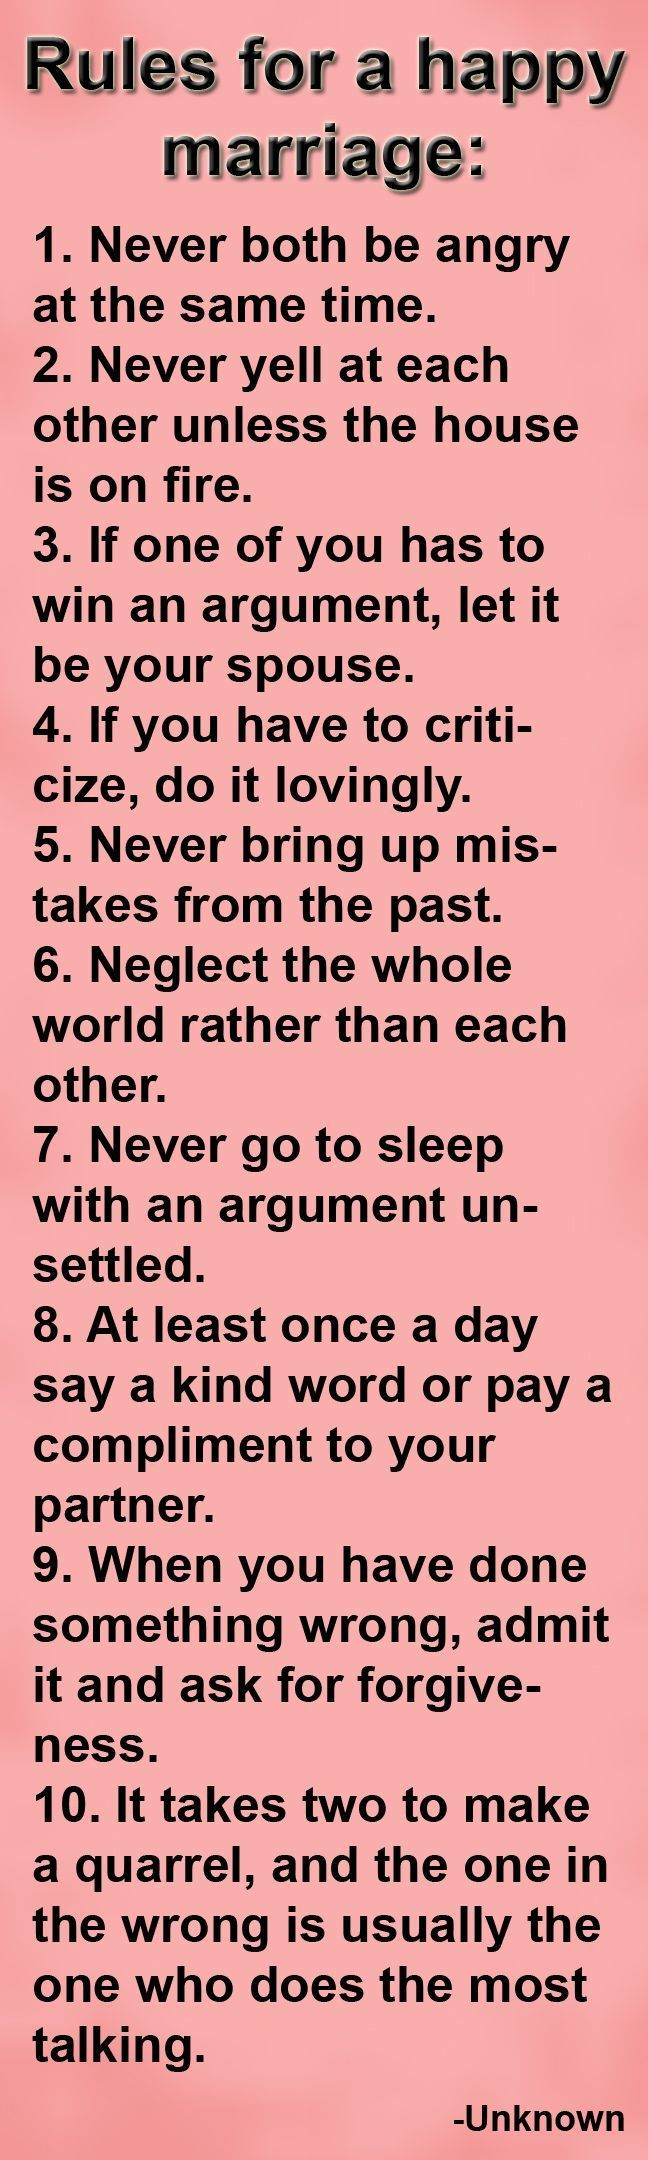 Very good rules I think the most important thing I ve learned from marriage